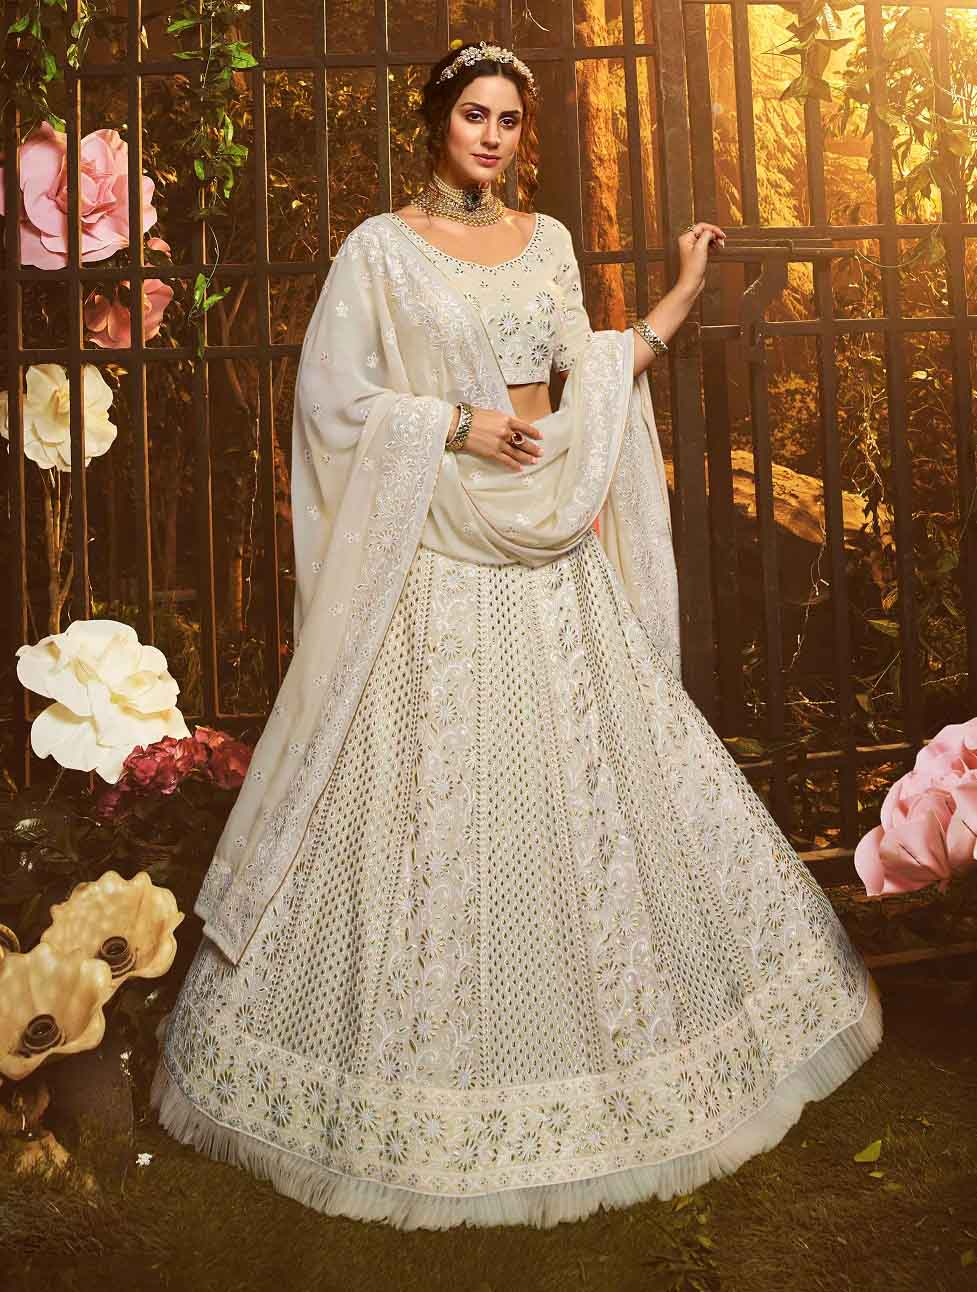 New trending designer white color gown with pink color soft net dupatta